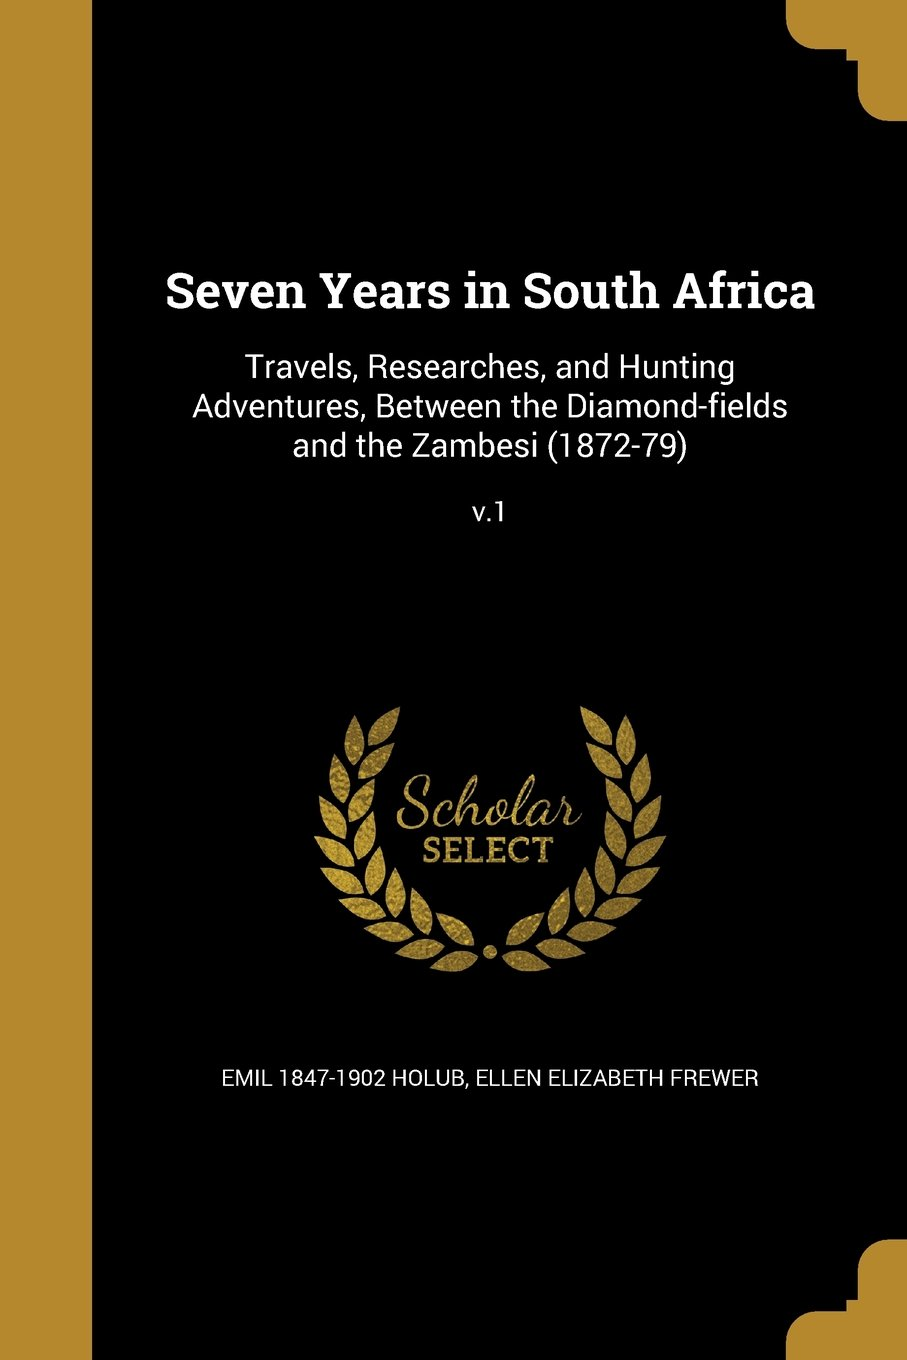 Download Seven Years in South Africa: Travels, Researches, and Hunting Adventures, Between the Diamond-Fields and the Zambesi (1872-79); V.1 pdf